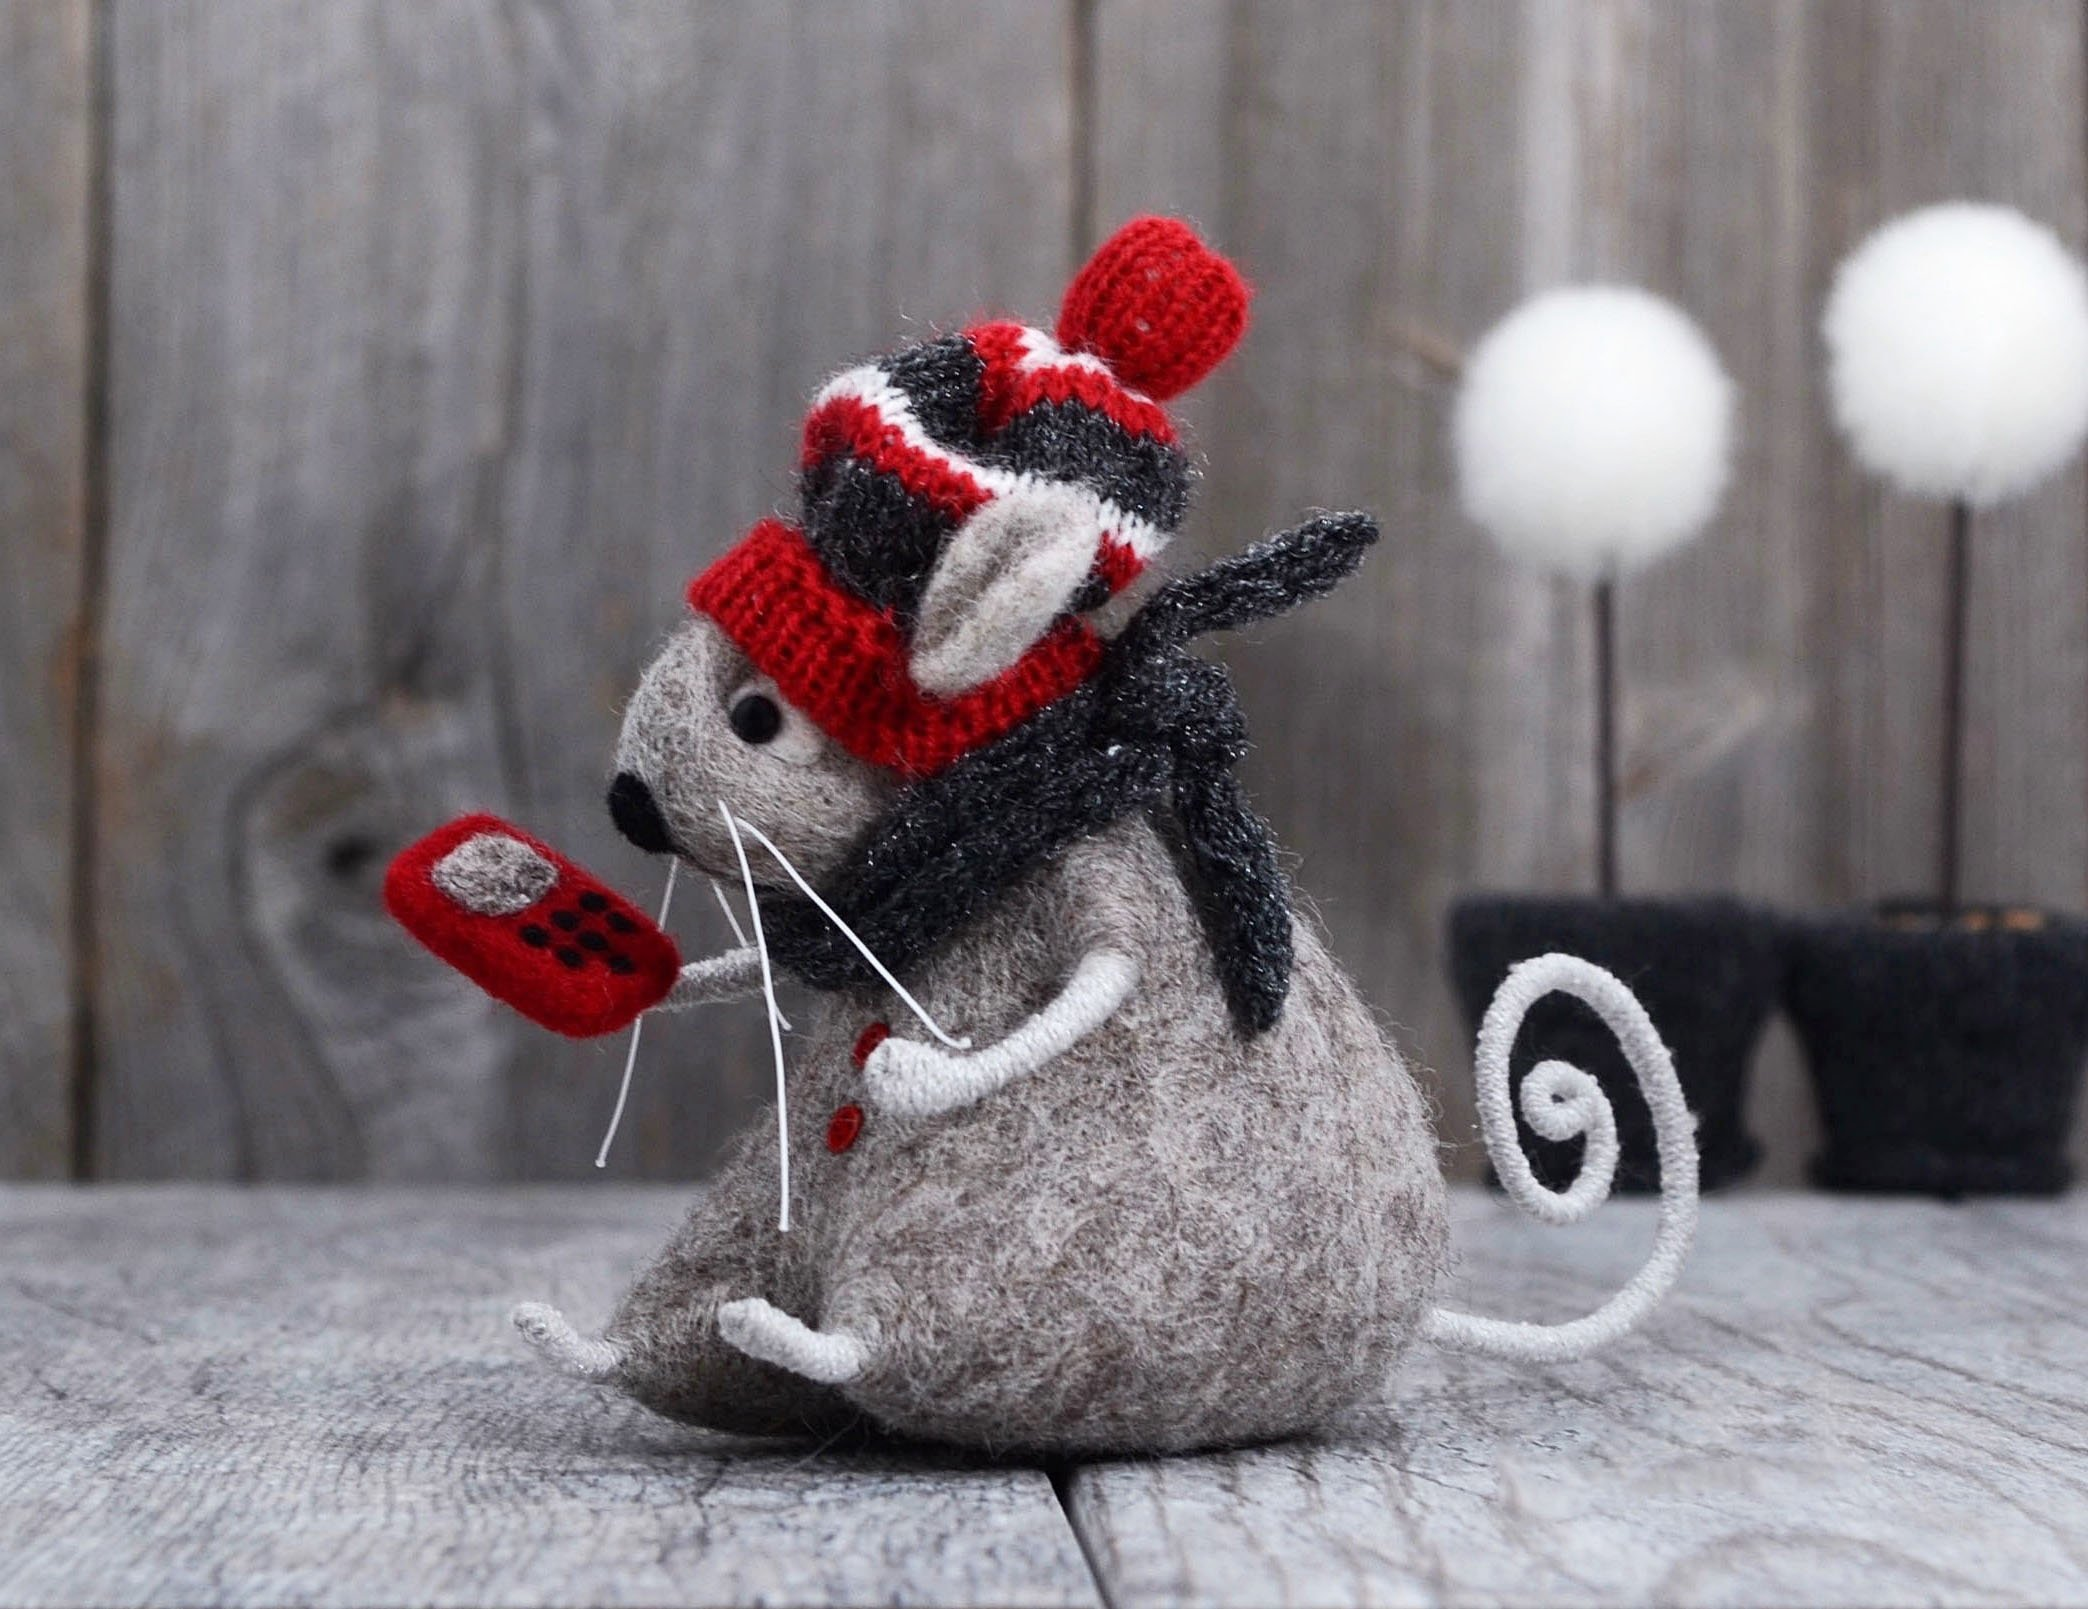 Needle Felted Mouse with Cell Phone Needle Felted Animal Birthday Gift Home Decor Kids Room Decor Wool Rat Mouse Doll